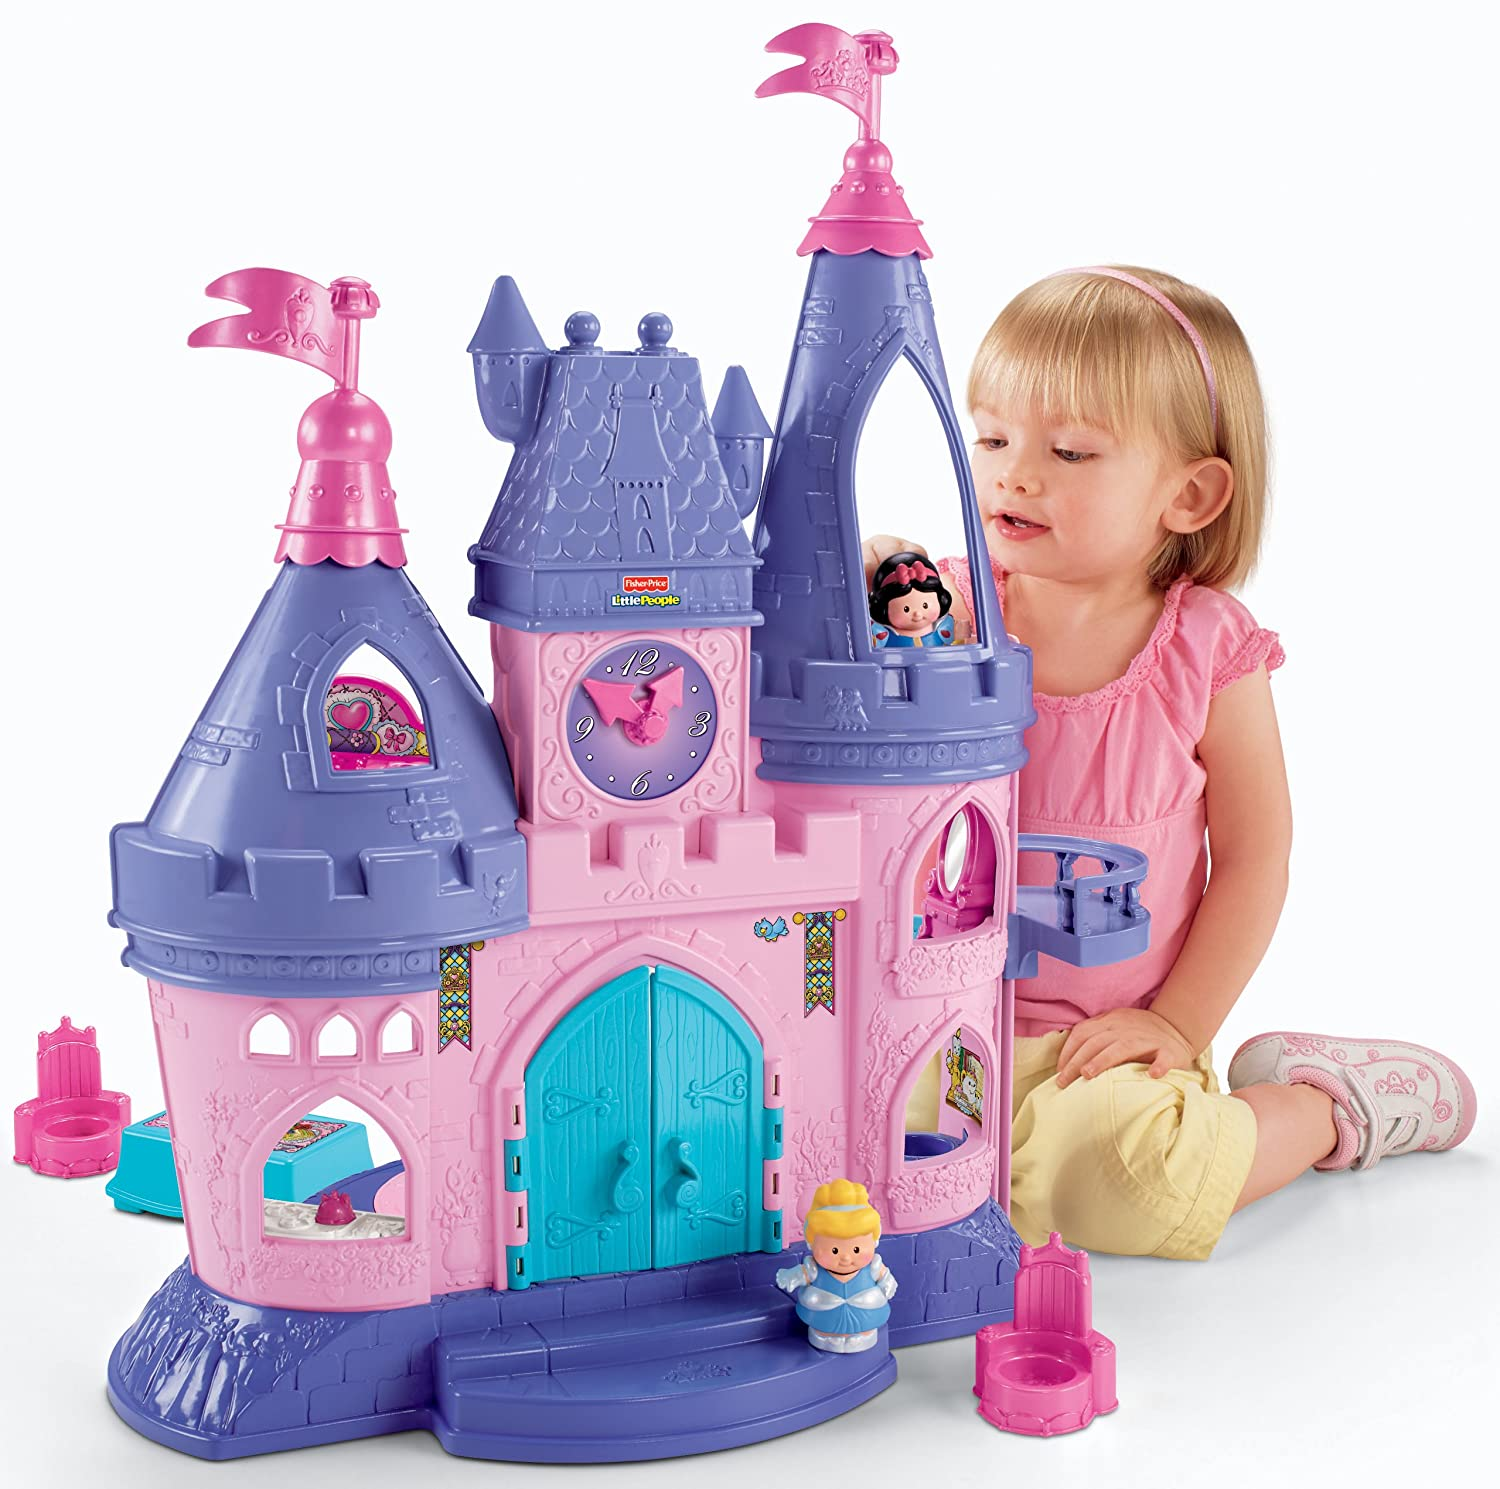 Princess Toys For 3 Year Olds : Best gifts for year old girls in itsy bitsy fun